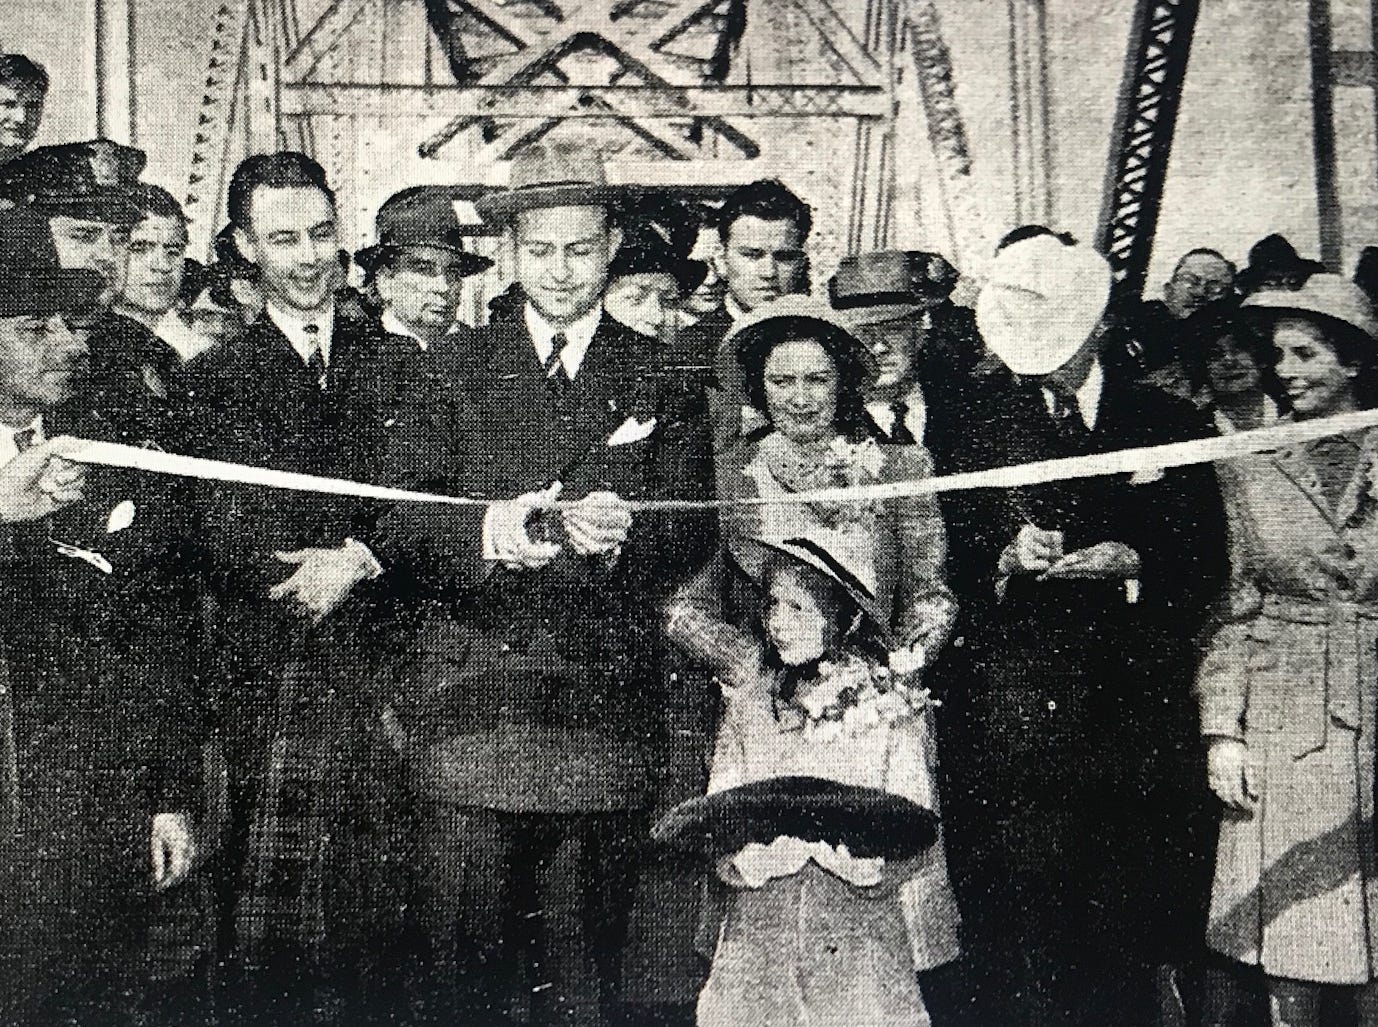 The governors of Indiana, Kentucky and Tennessee celebrate with a huge crowd on the day tolls were lifted on the Ohio River bridge between Evansville and Henderson.